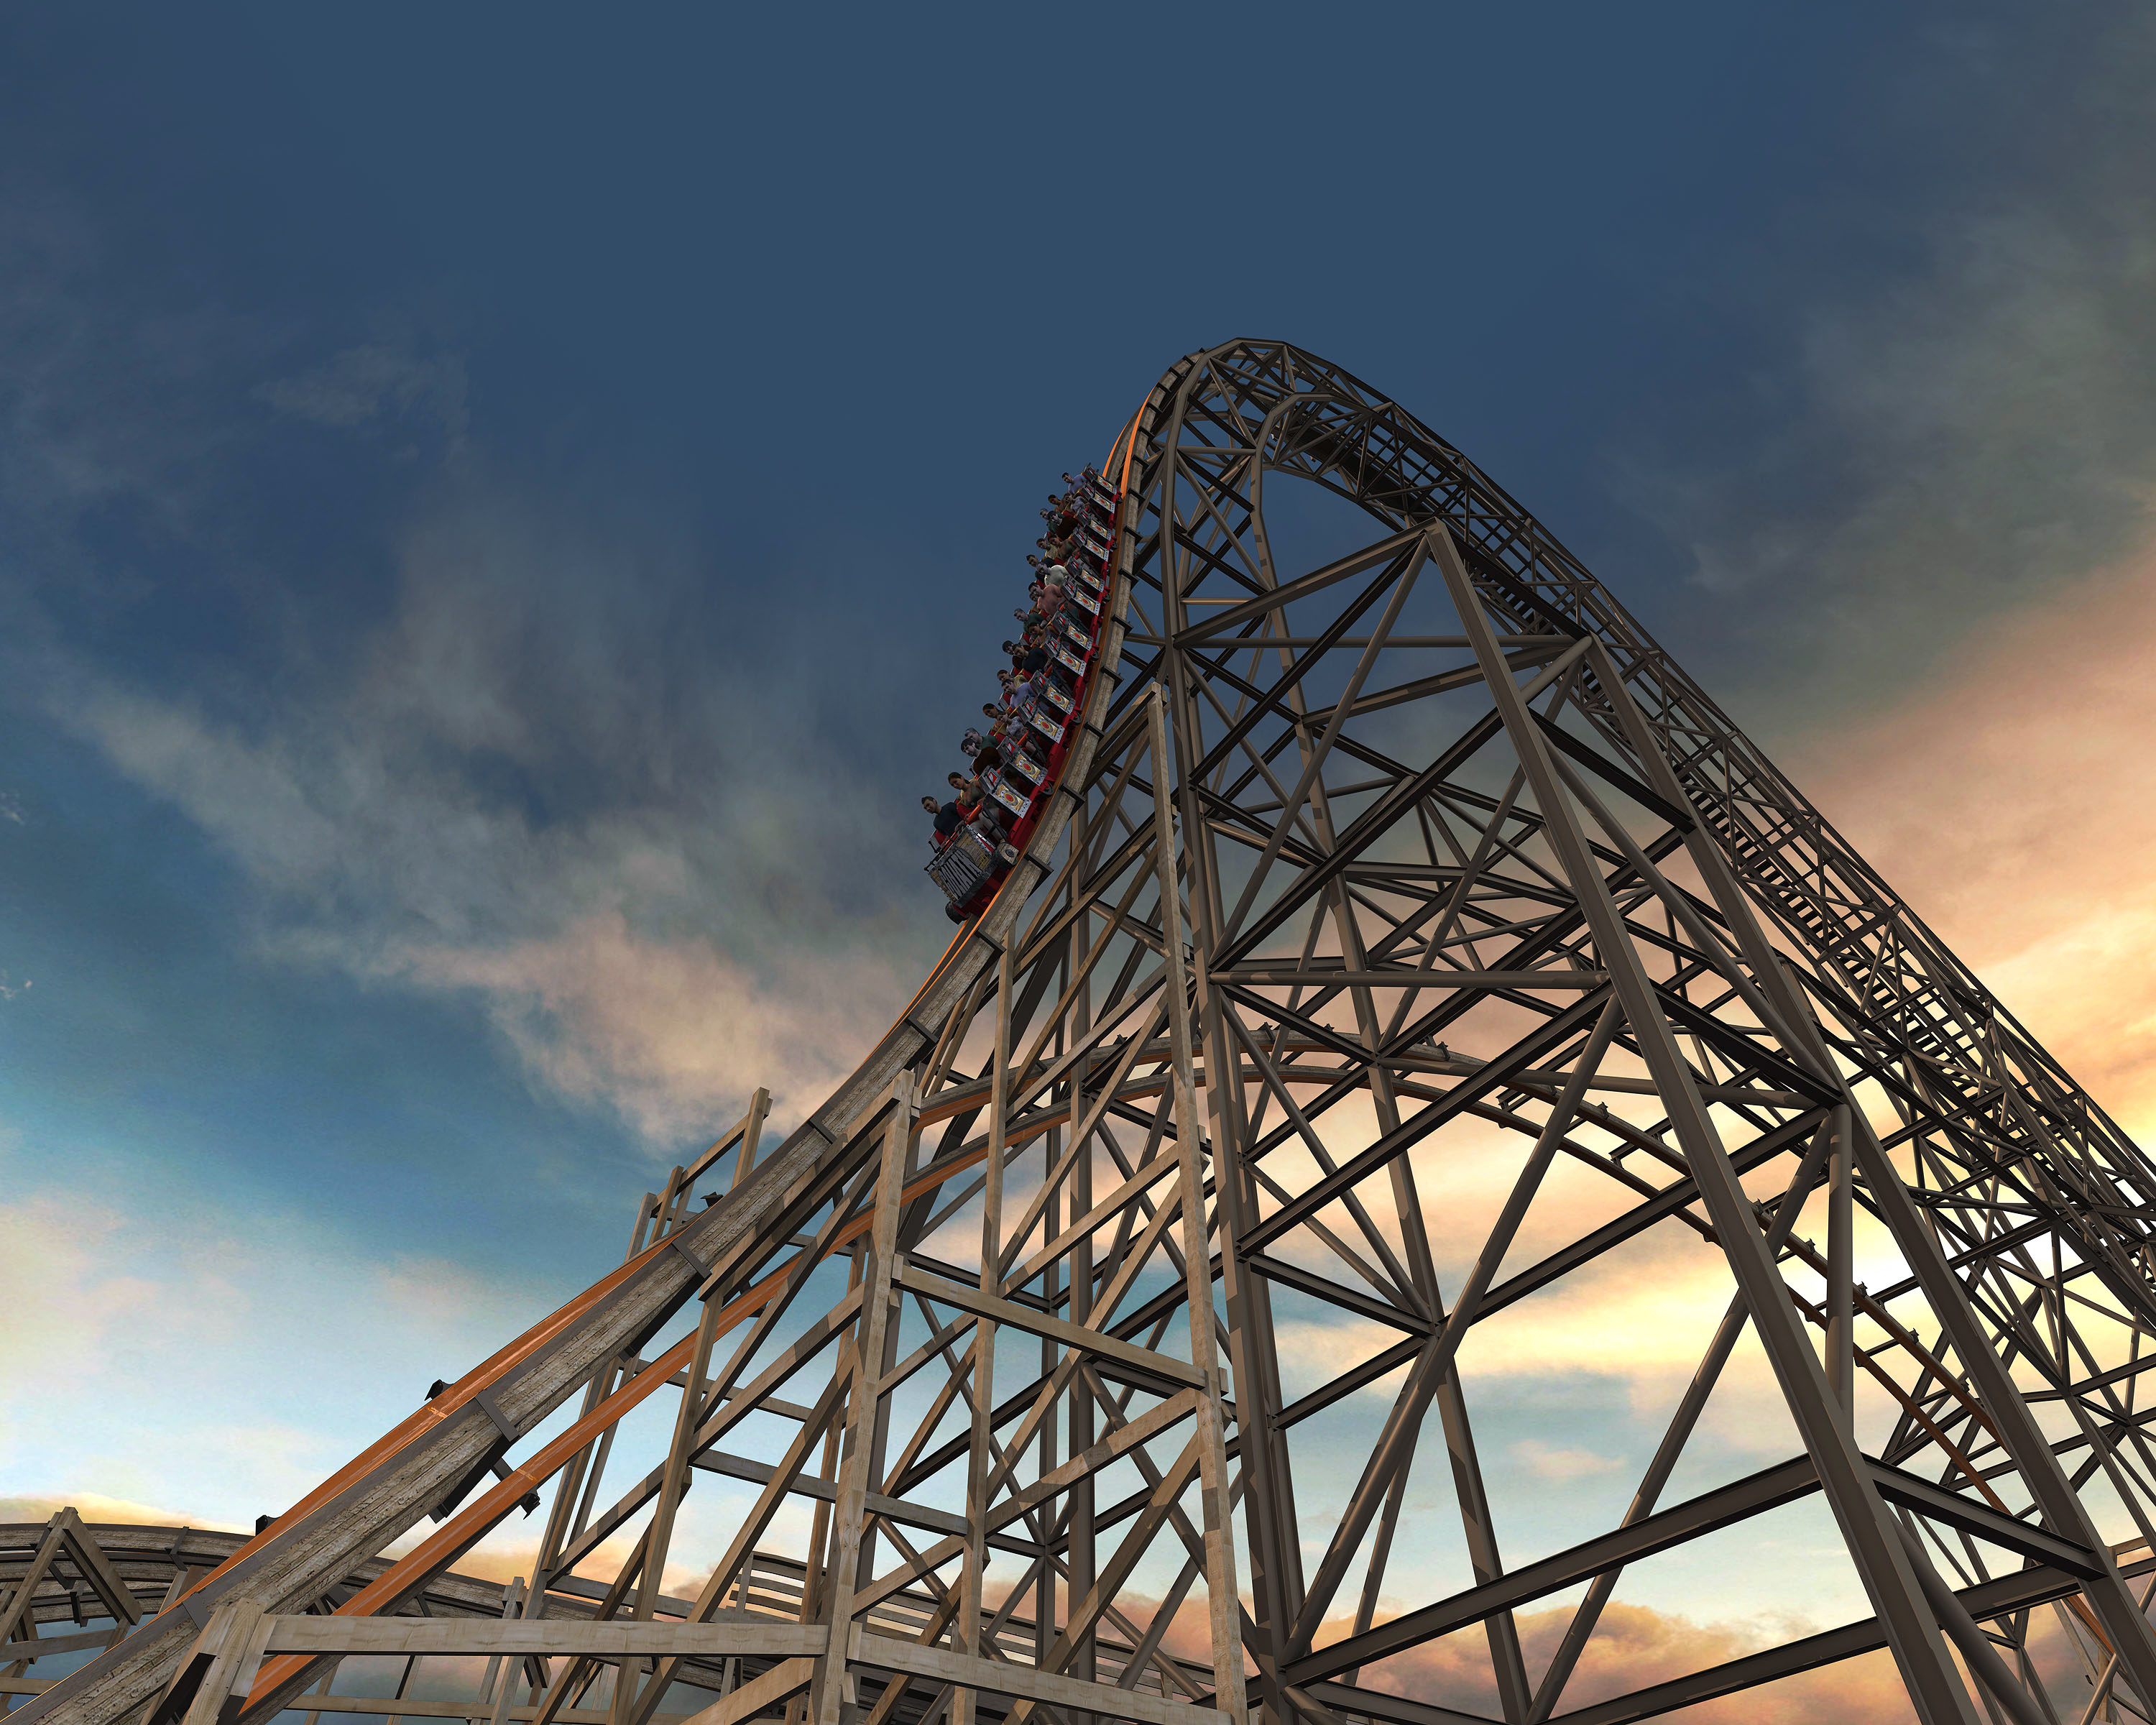 North American Amusement Parks and Attractions Announce ...